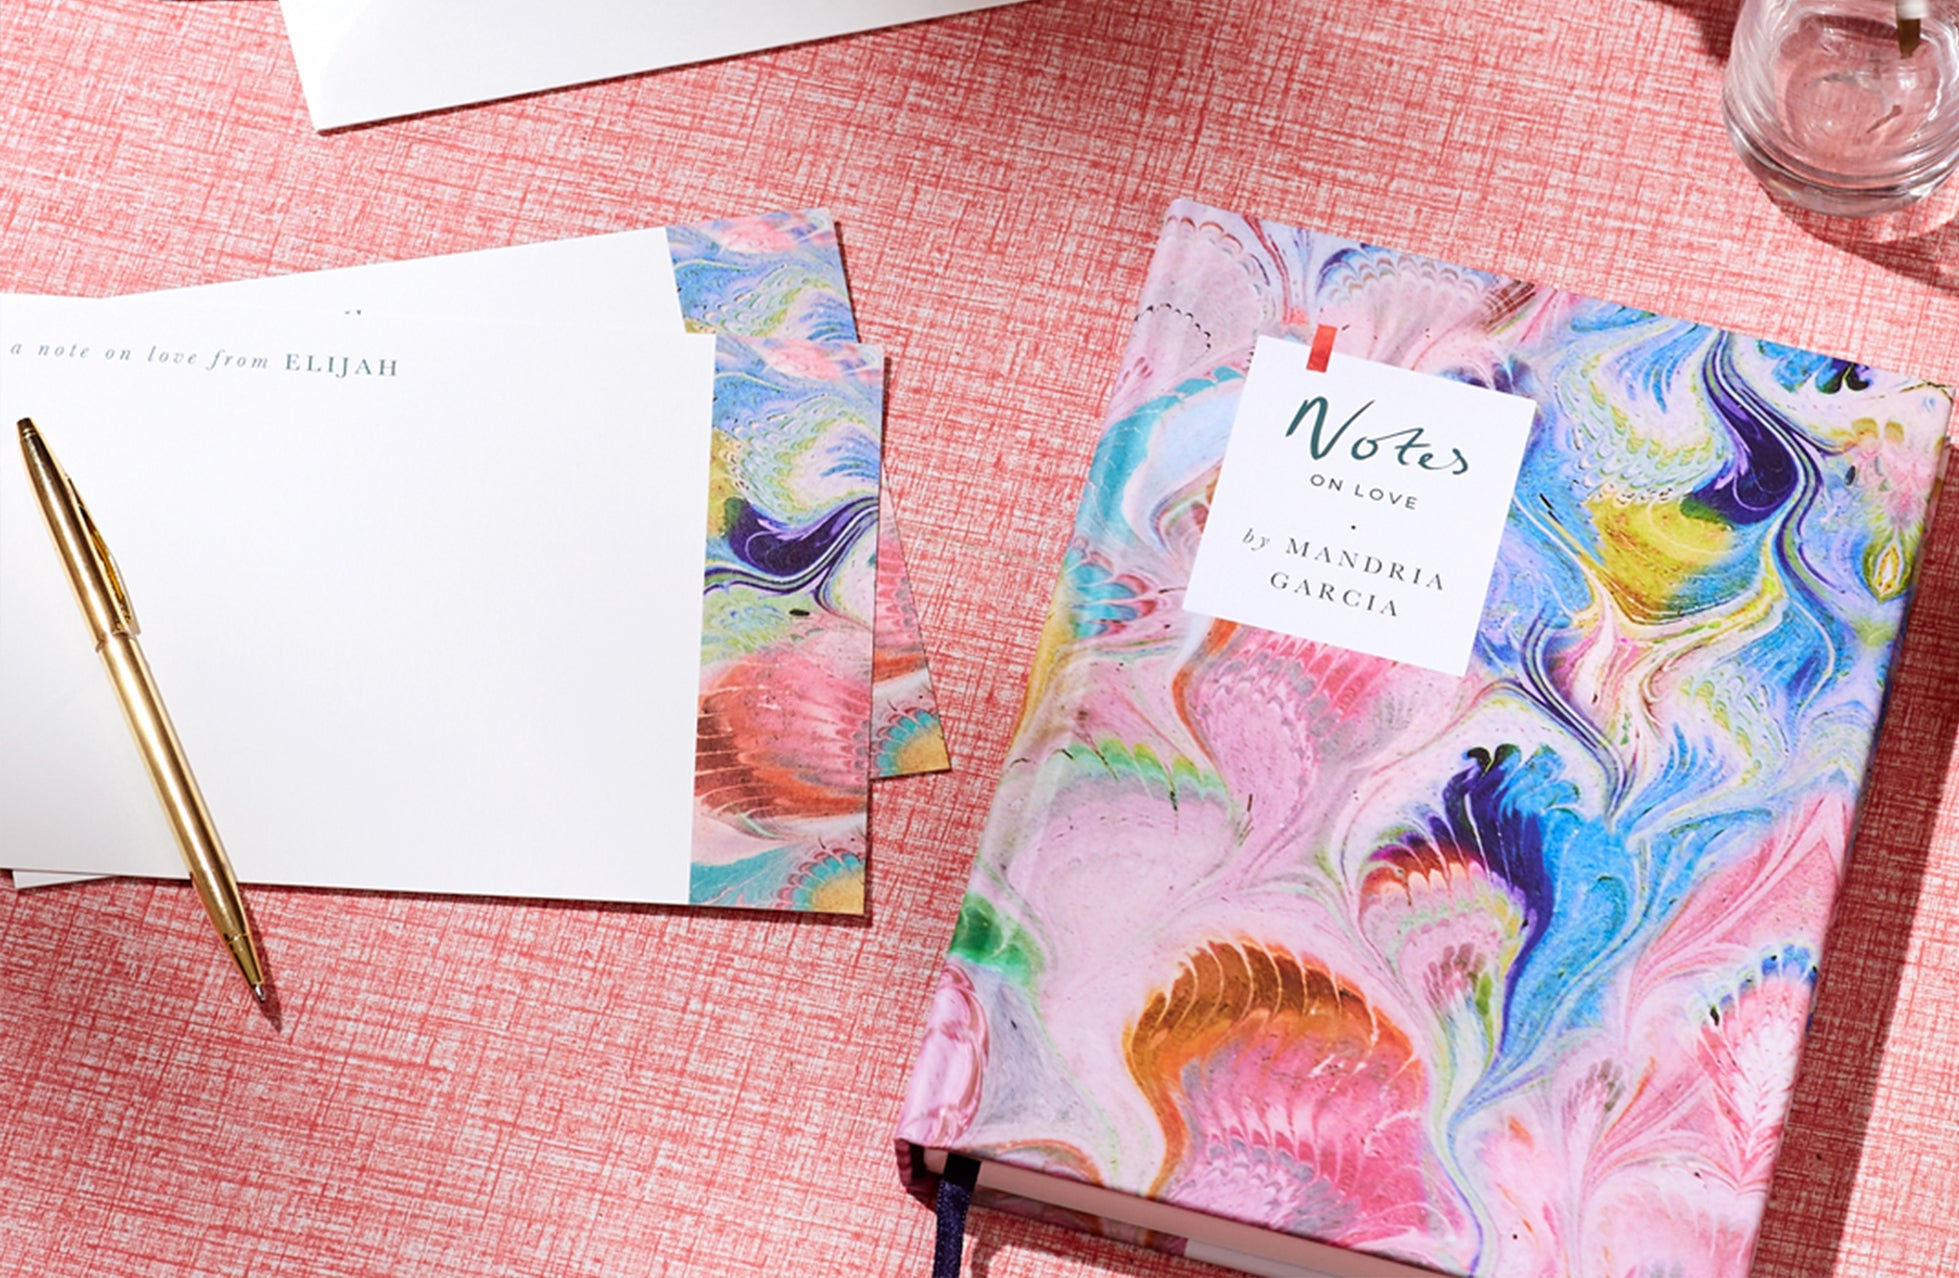 Personalised Notebook and notecards from Fenton x Papier